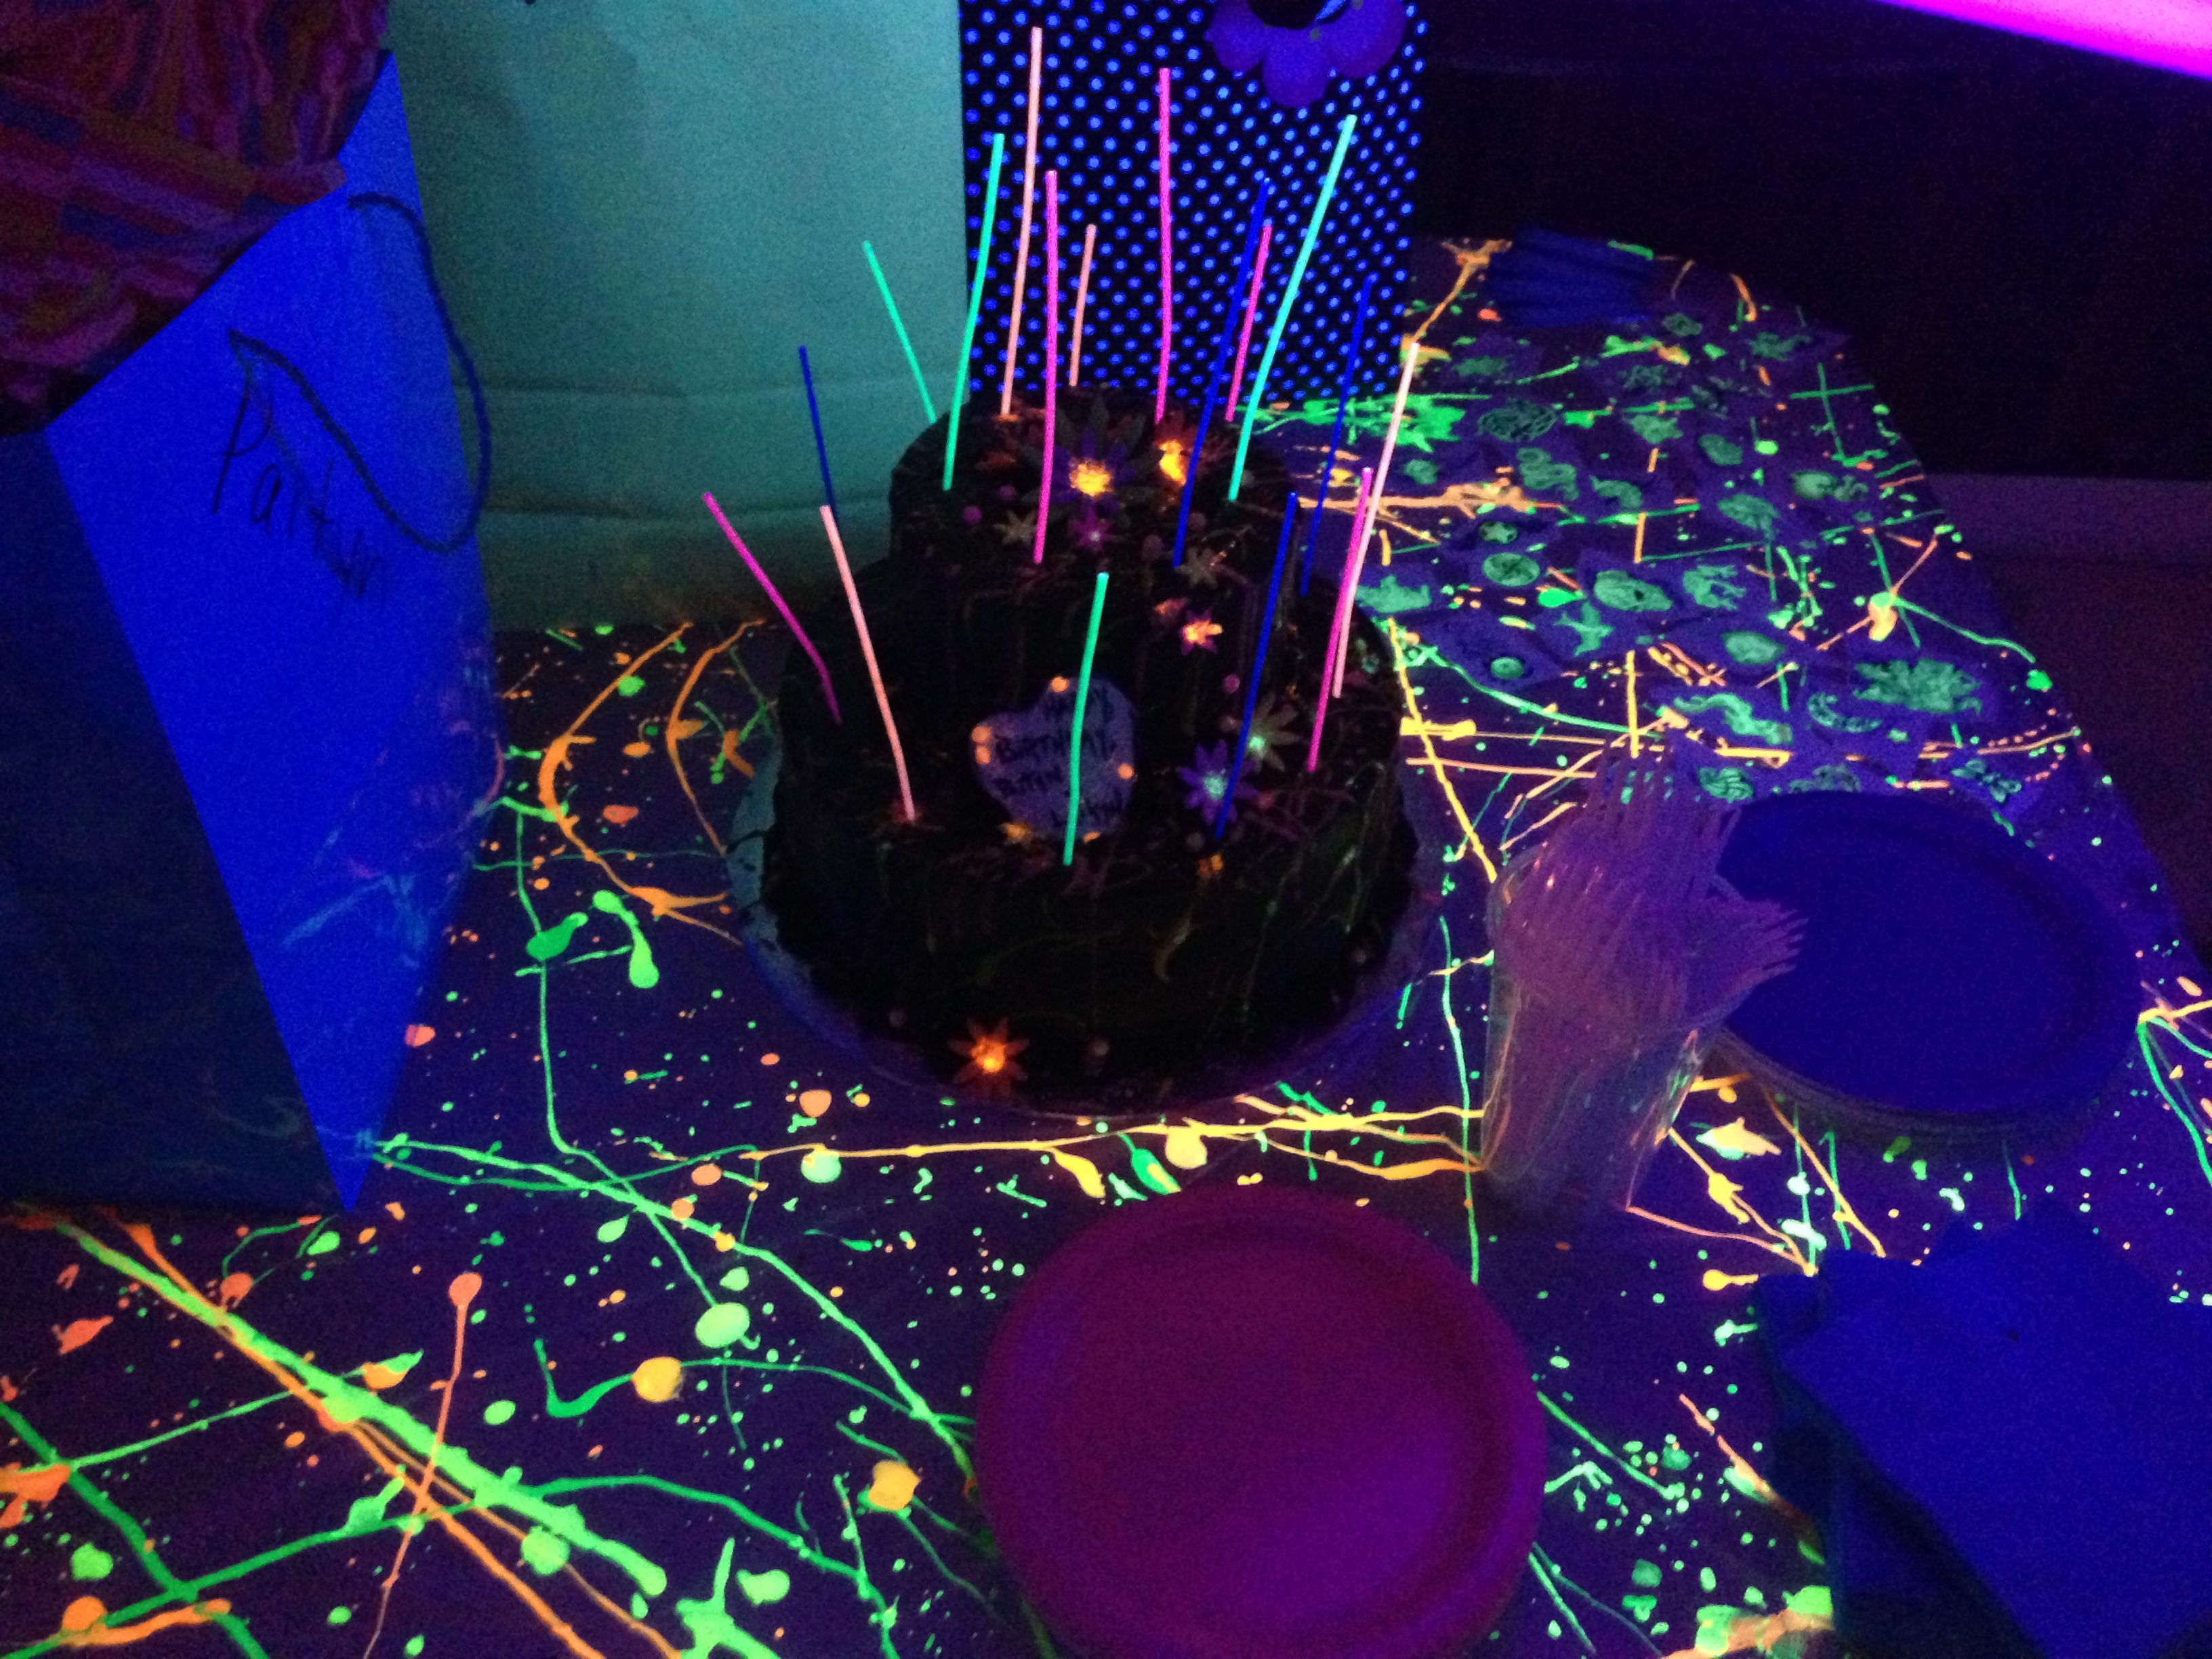 Glow In The Dark Party Splatter Paint On Black Paper Or Table